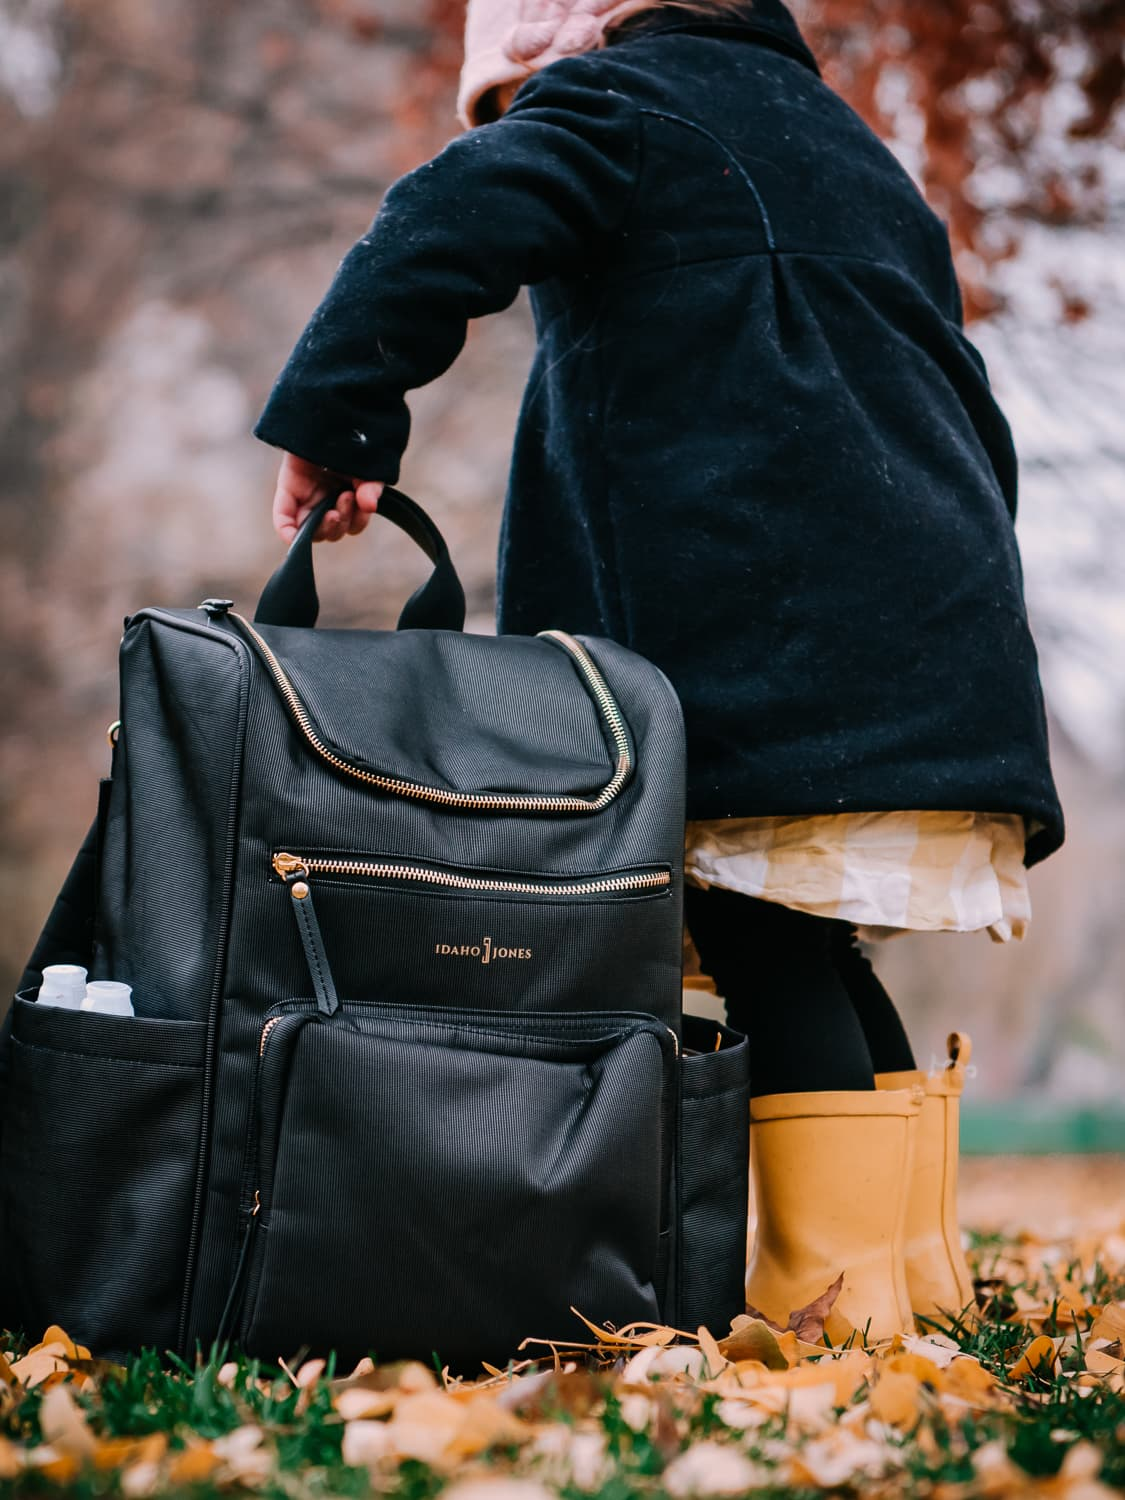 Our lightweight diaper bag, the Idaho Jones Gallivant.